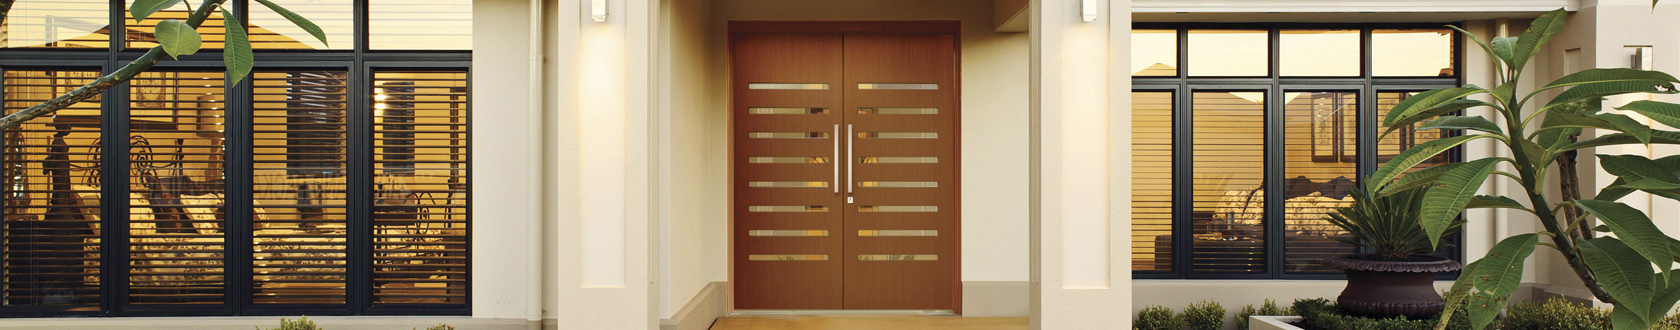 Perfect Front Entry Doors Front Entry Doors 1680 x 330 · 313 kB · jpeg & Corinthian Entrance Doors | Modern Home u0026 House Design Ideas pezcame.com